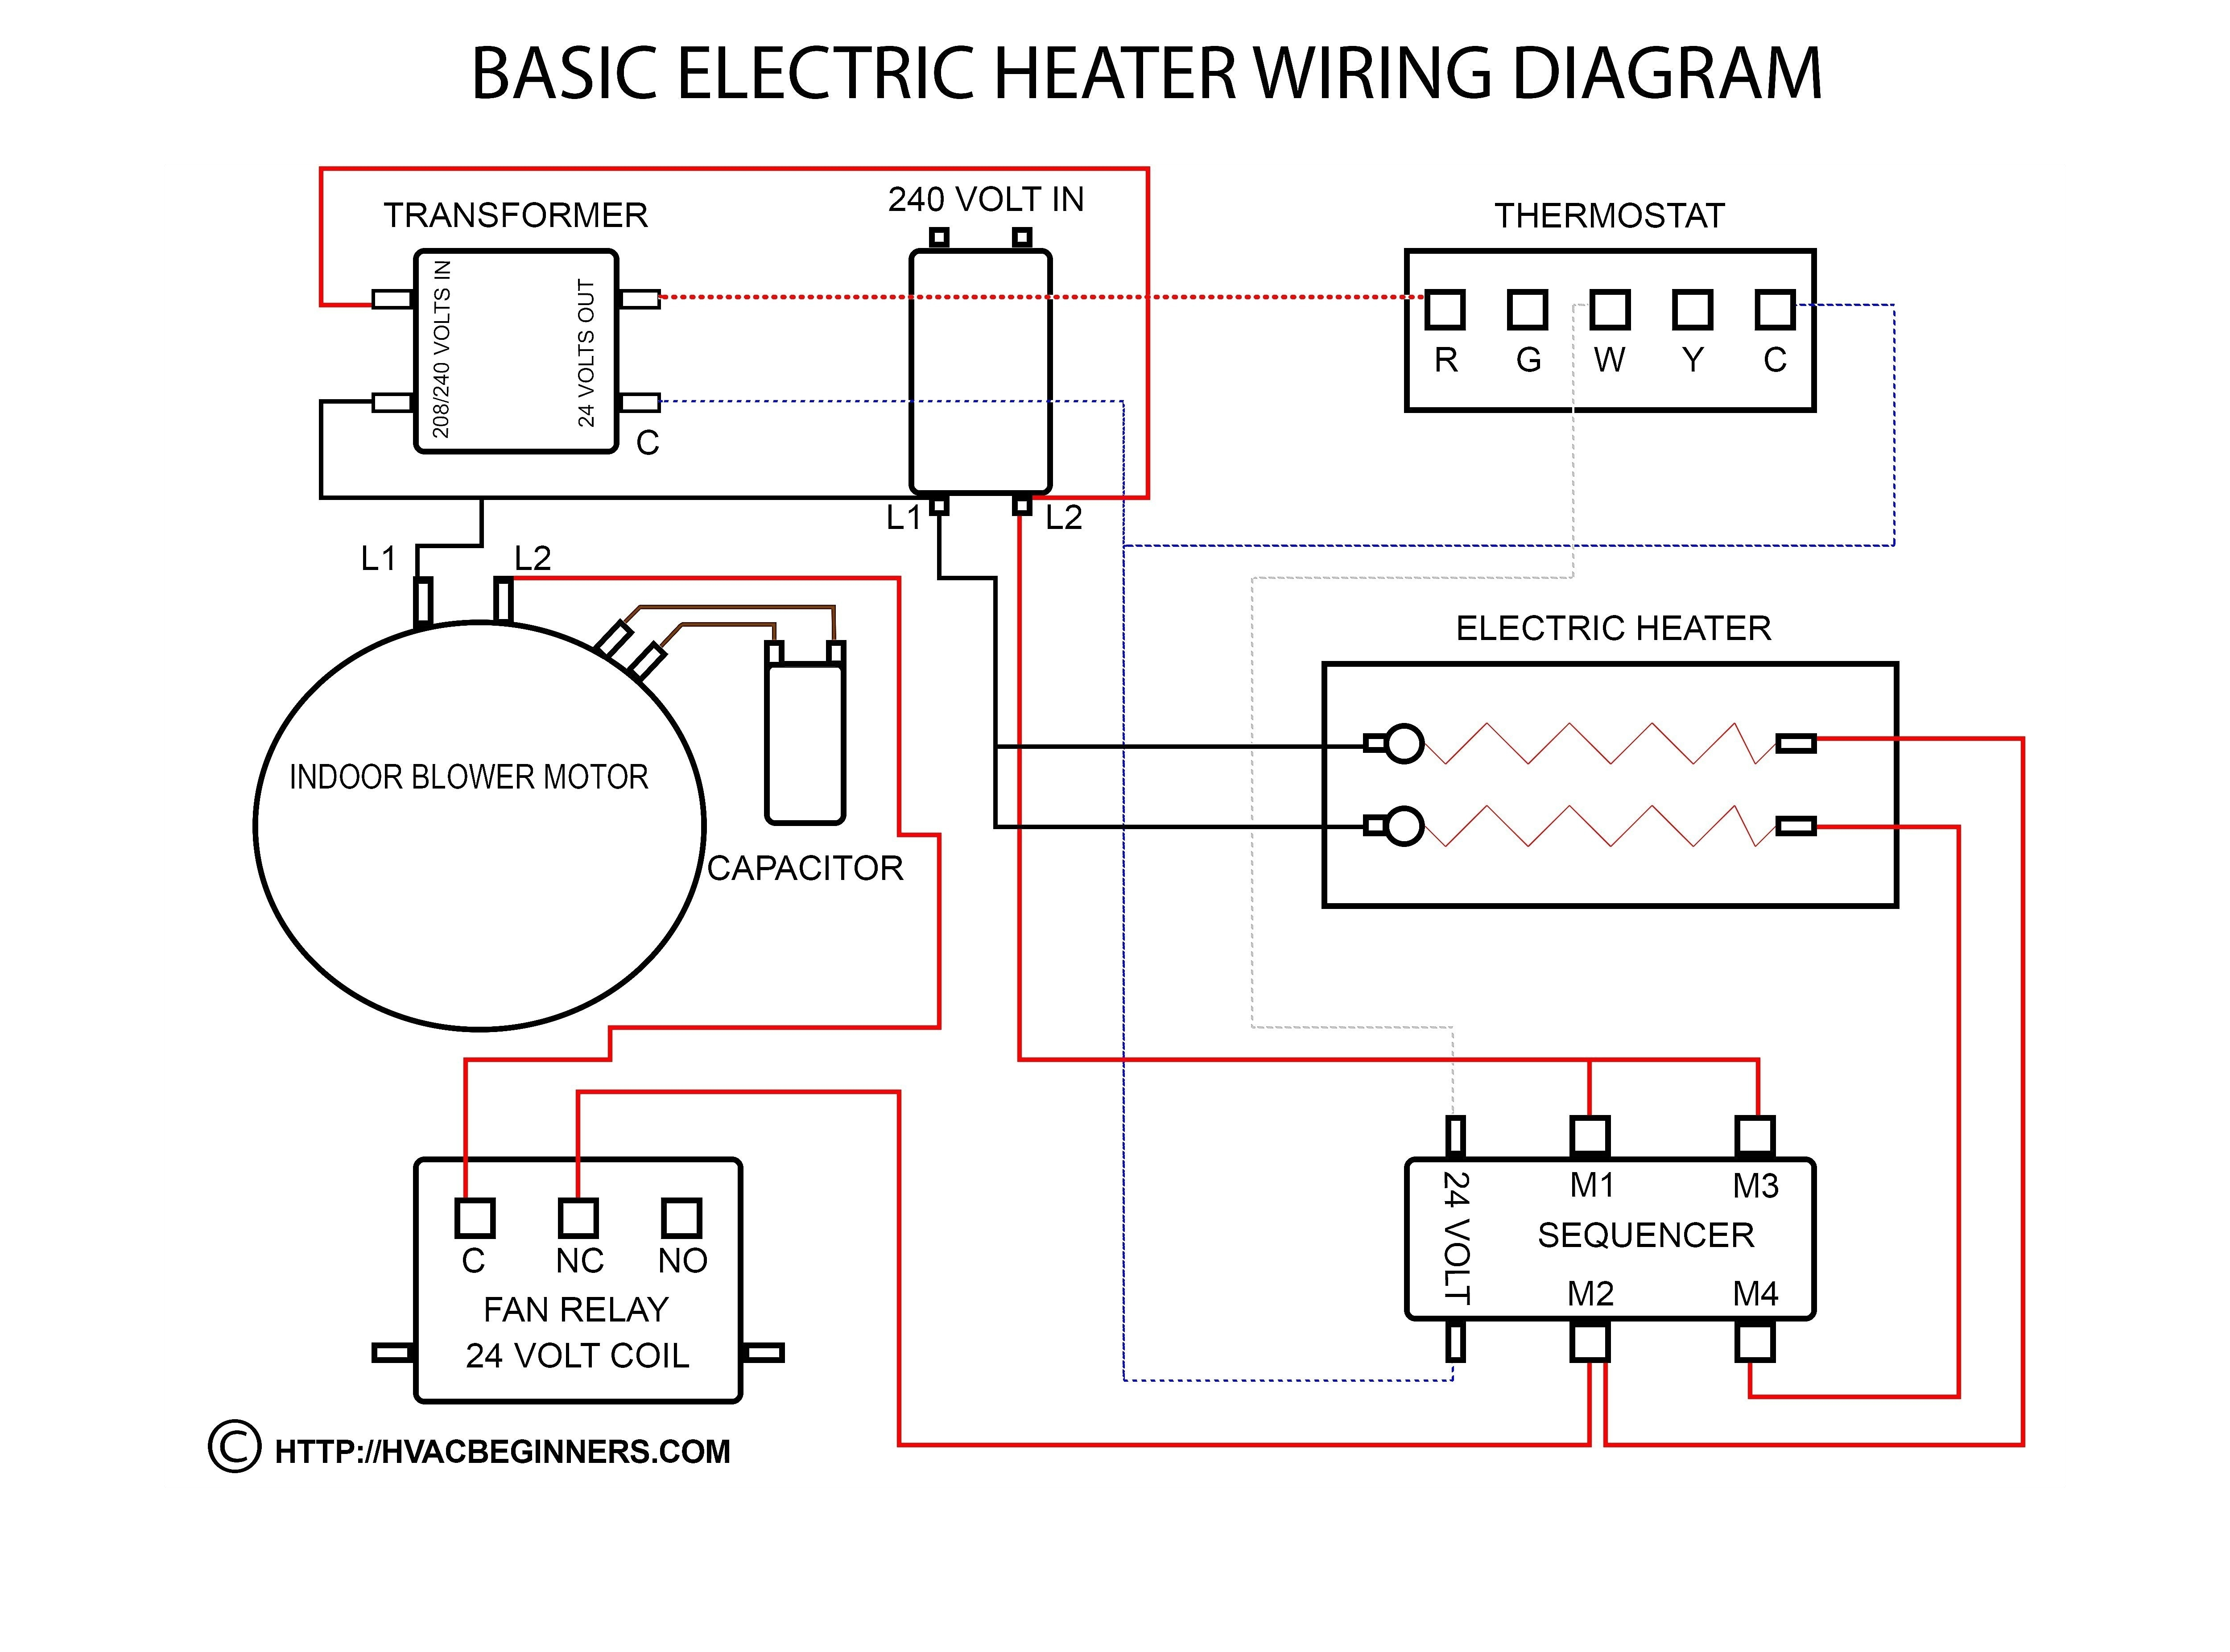 air conditioner wiring diagram pdf Collection-Wiring Diagram Hvac Refrence Home Hvac Wiring Diagram Valid Wiring Diagram Hvac Save Hvac Wiring 16-s